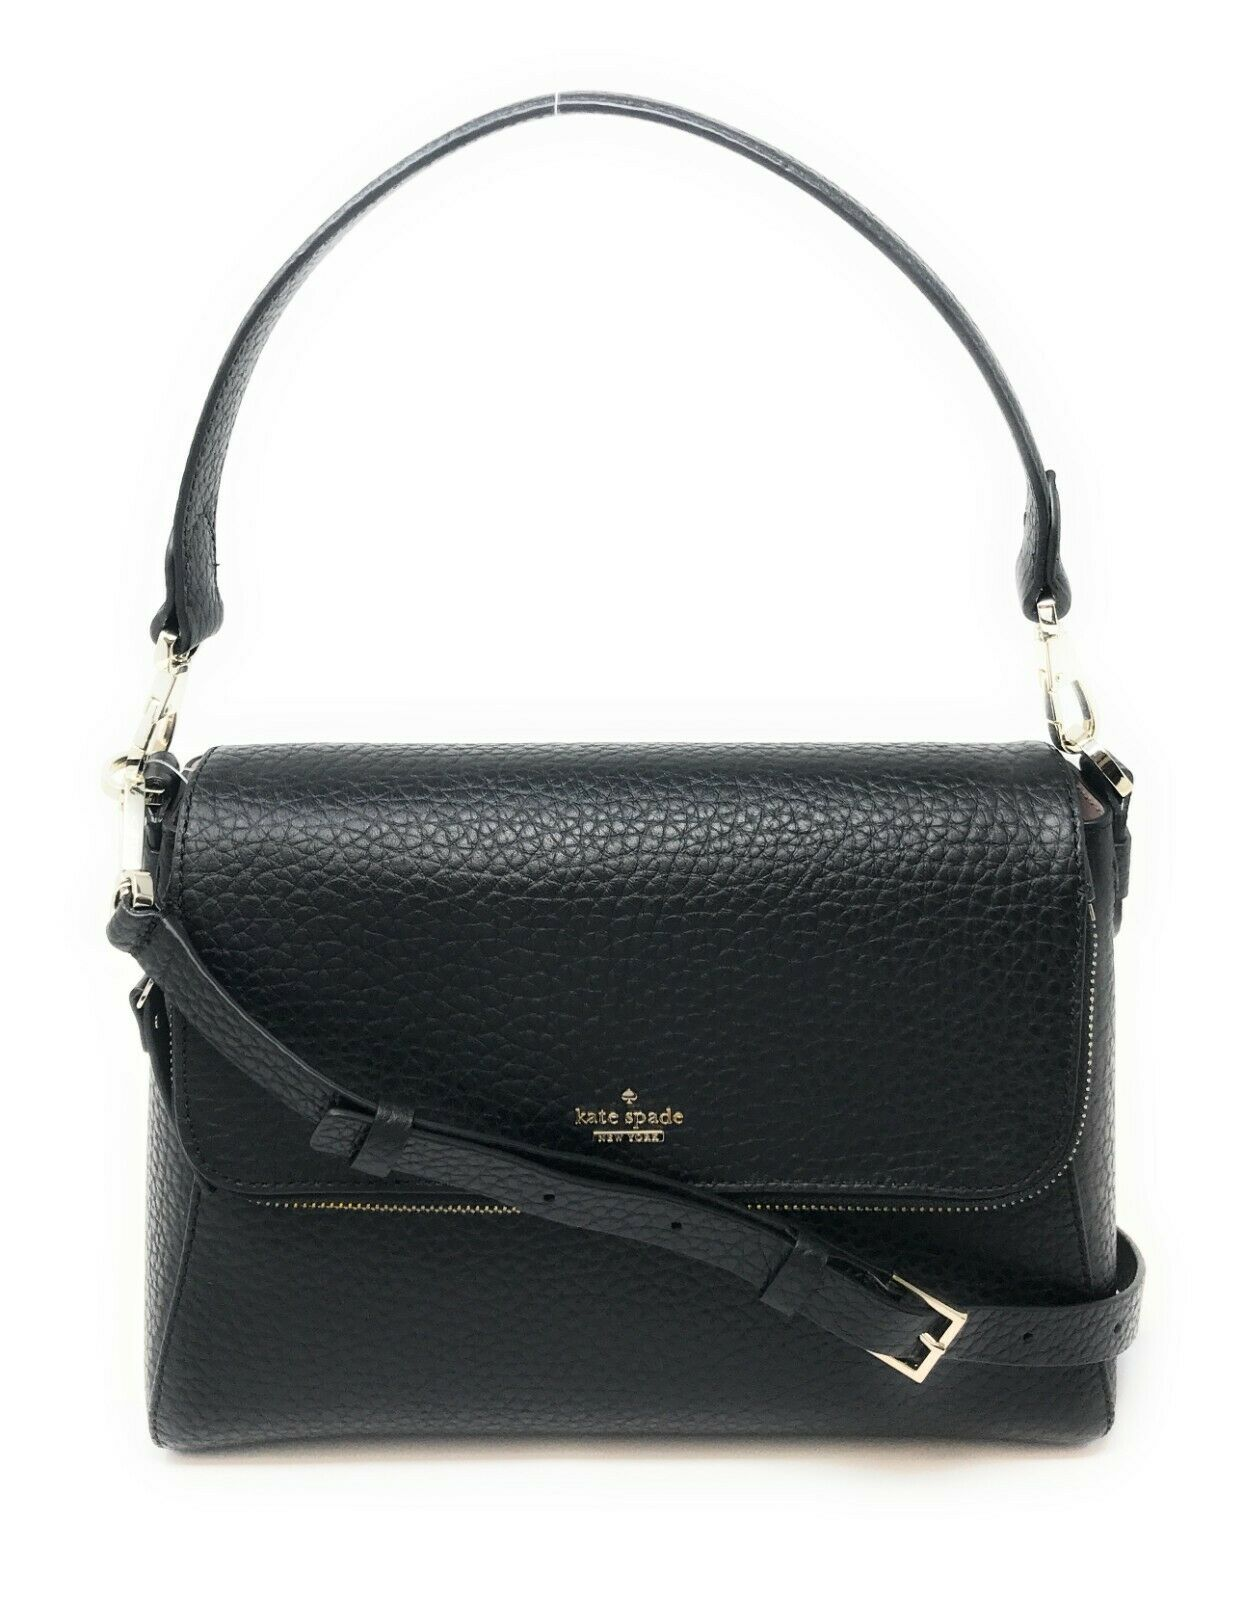 Kate Spade Carter Georgia Leather Crossbody Shoulder Bag WKRU5988 $358